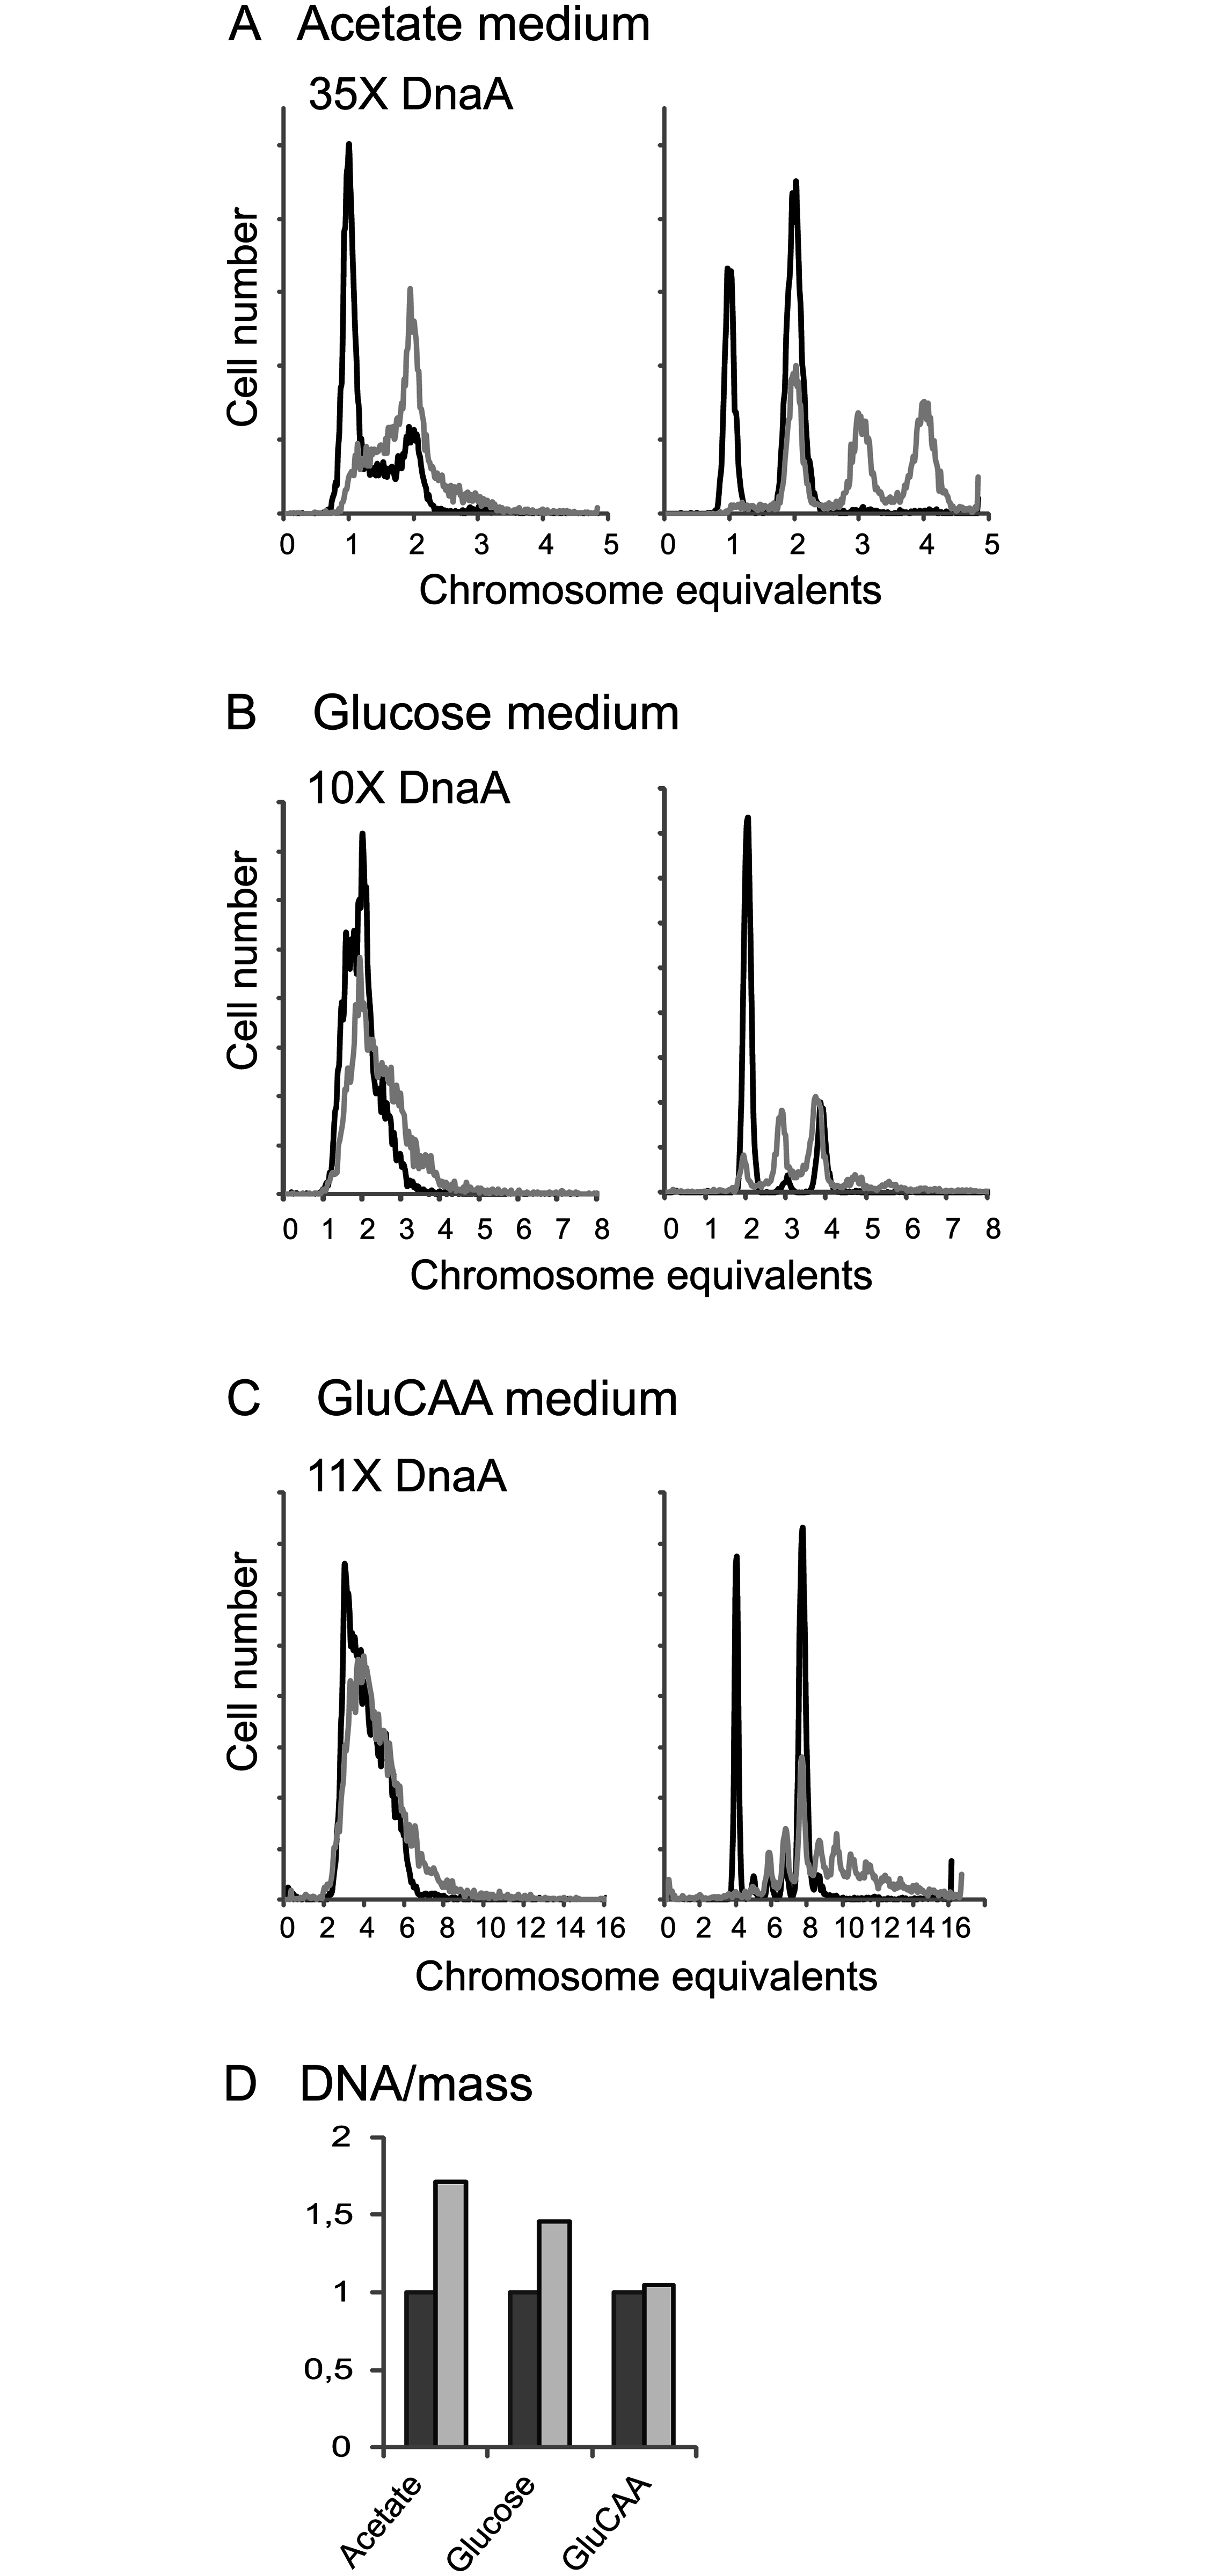 A large excess of DnaA protein changes the cell cycle.